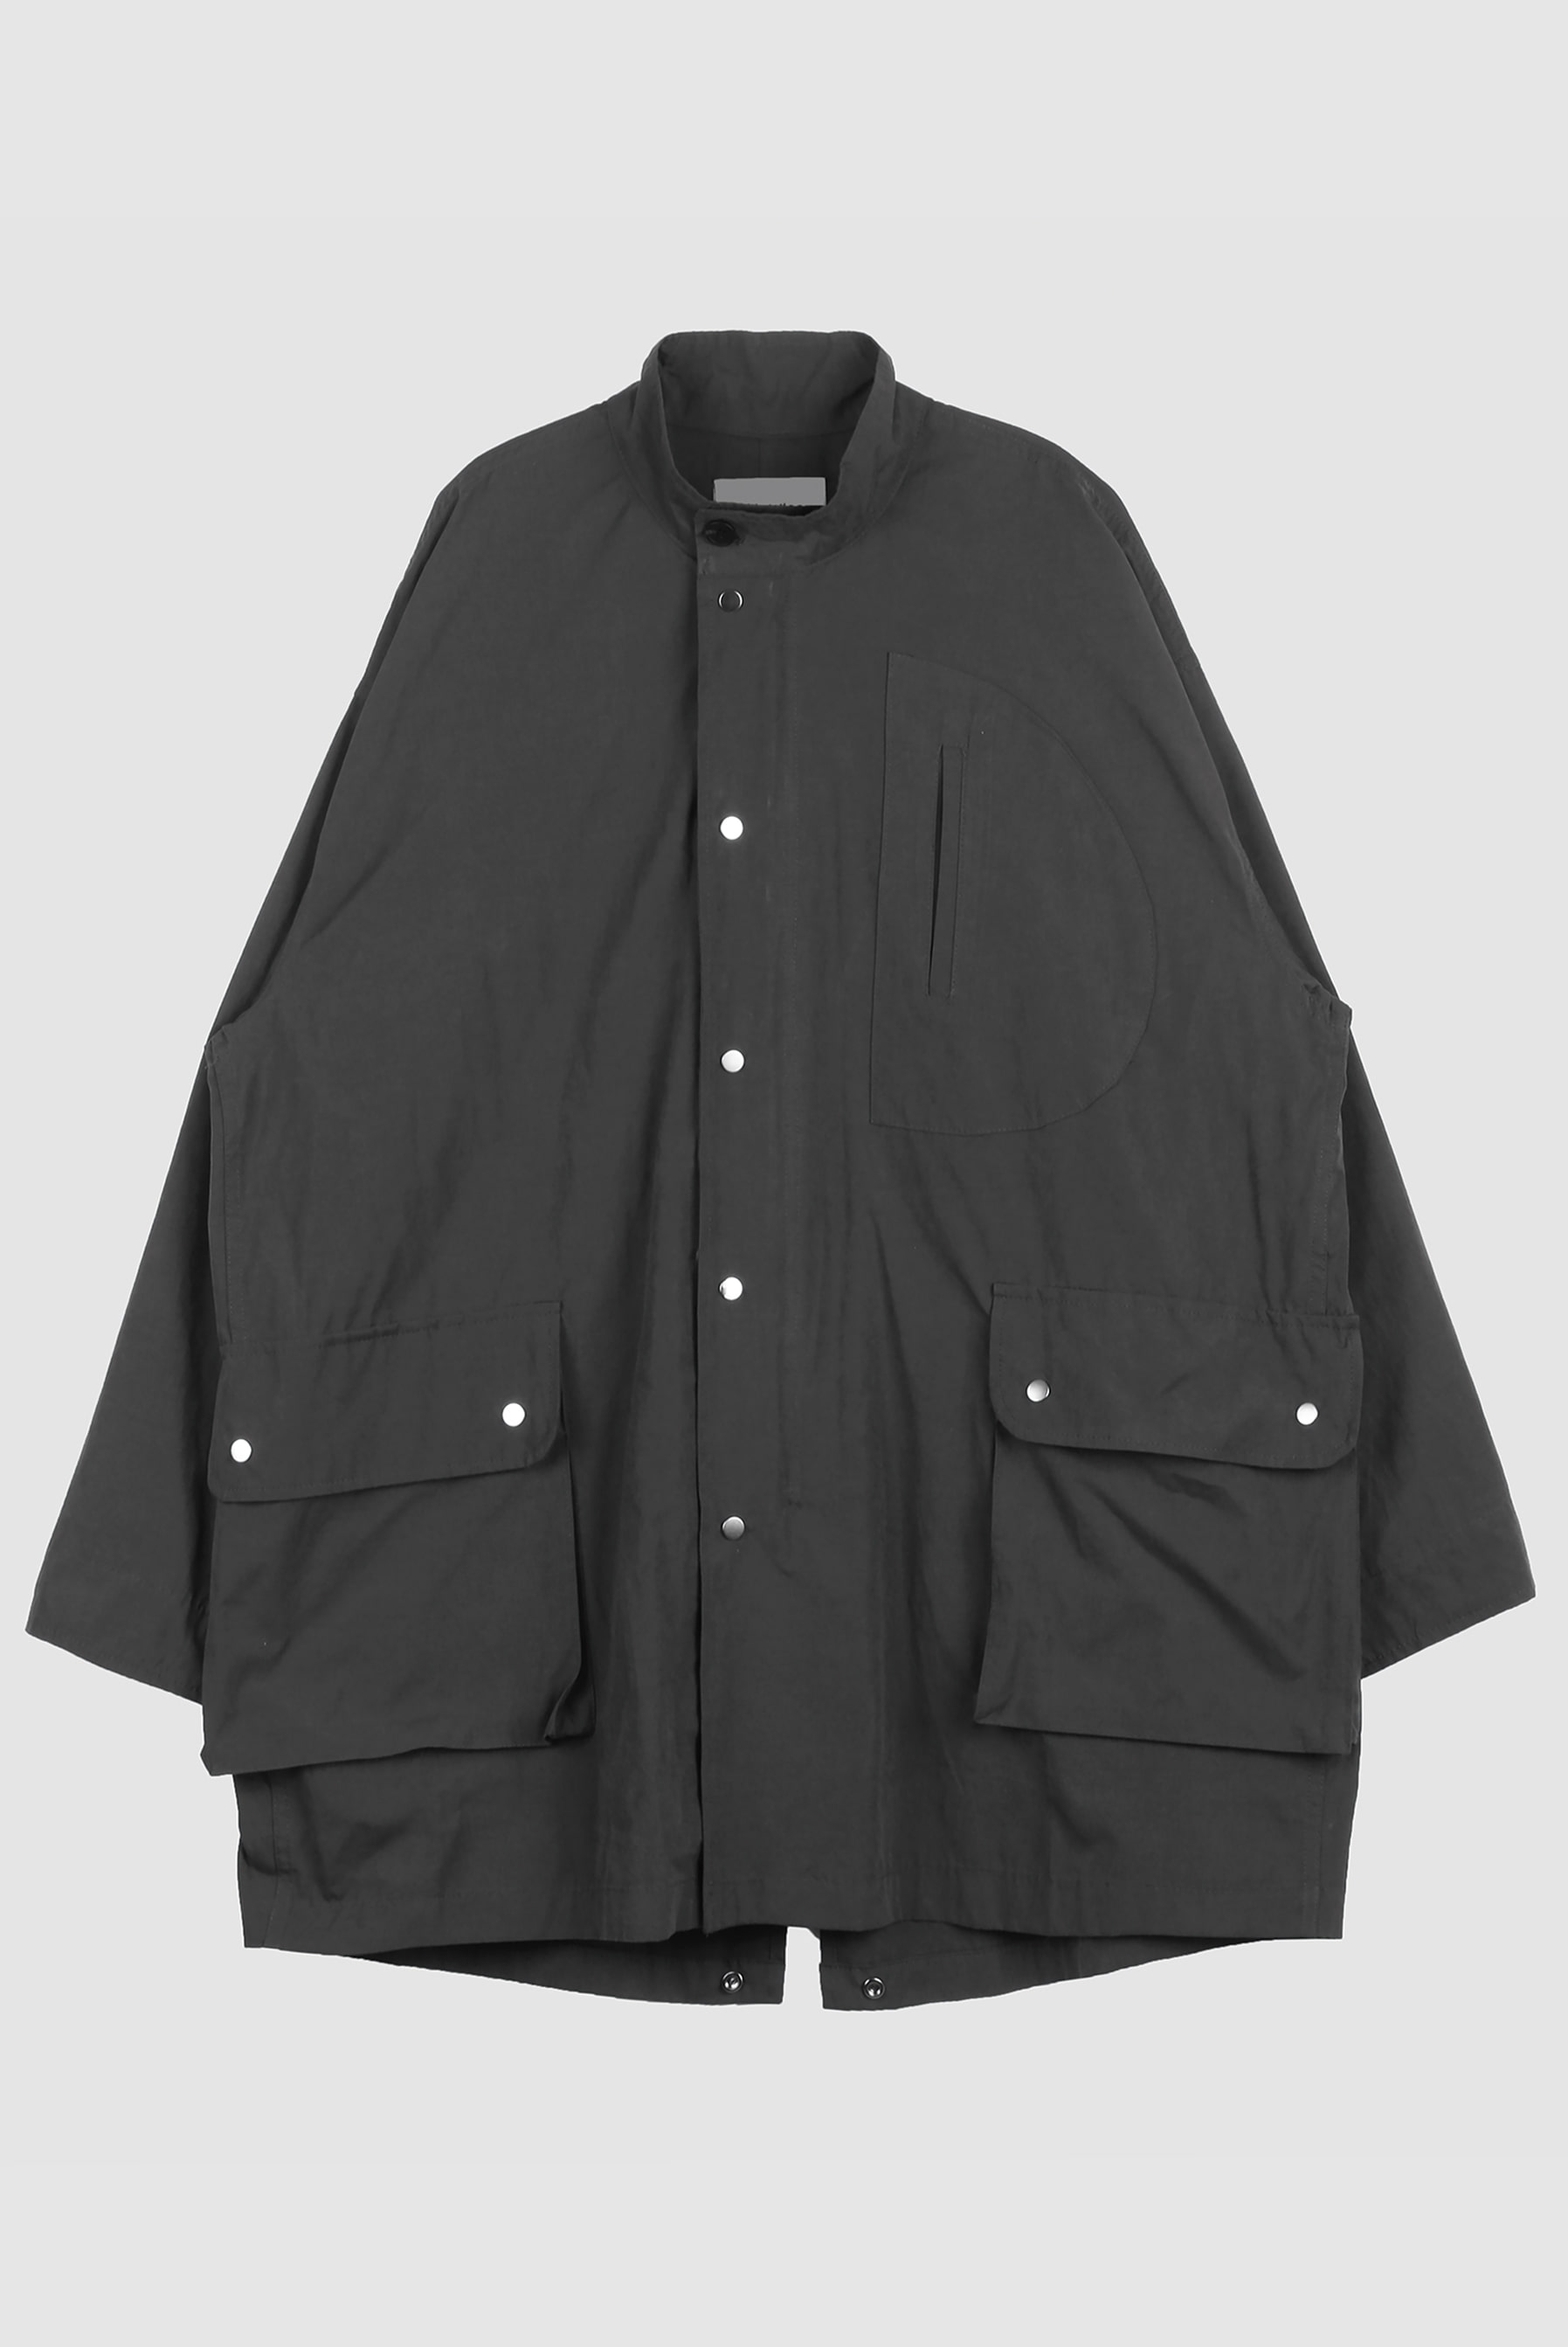 Light_Moz Season Field_Jacket